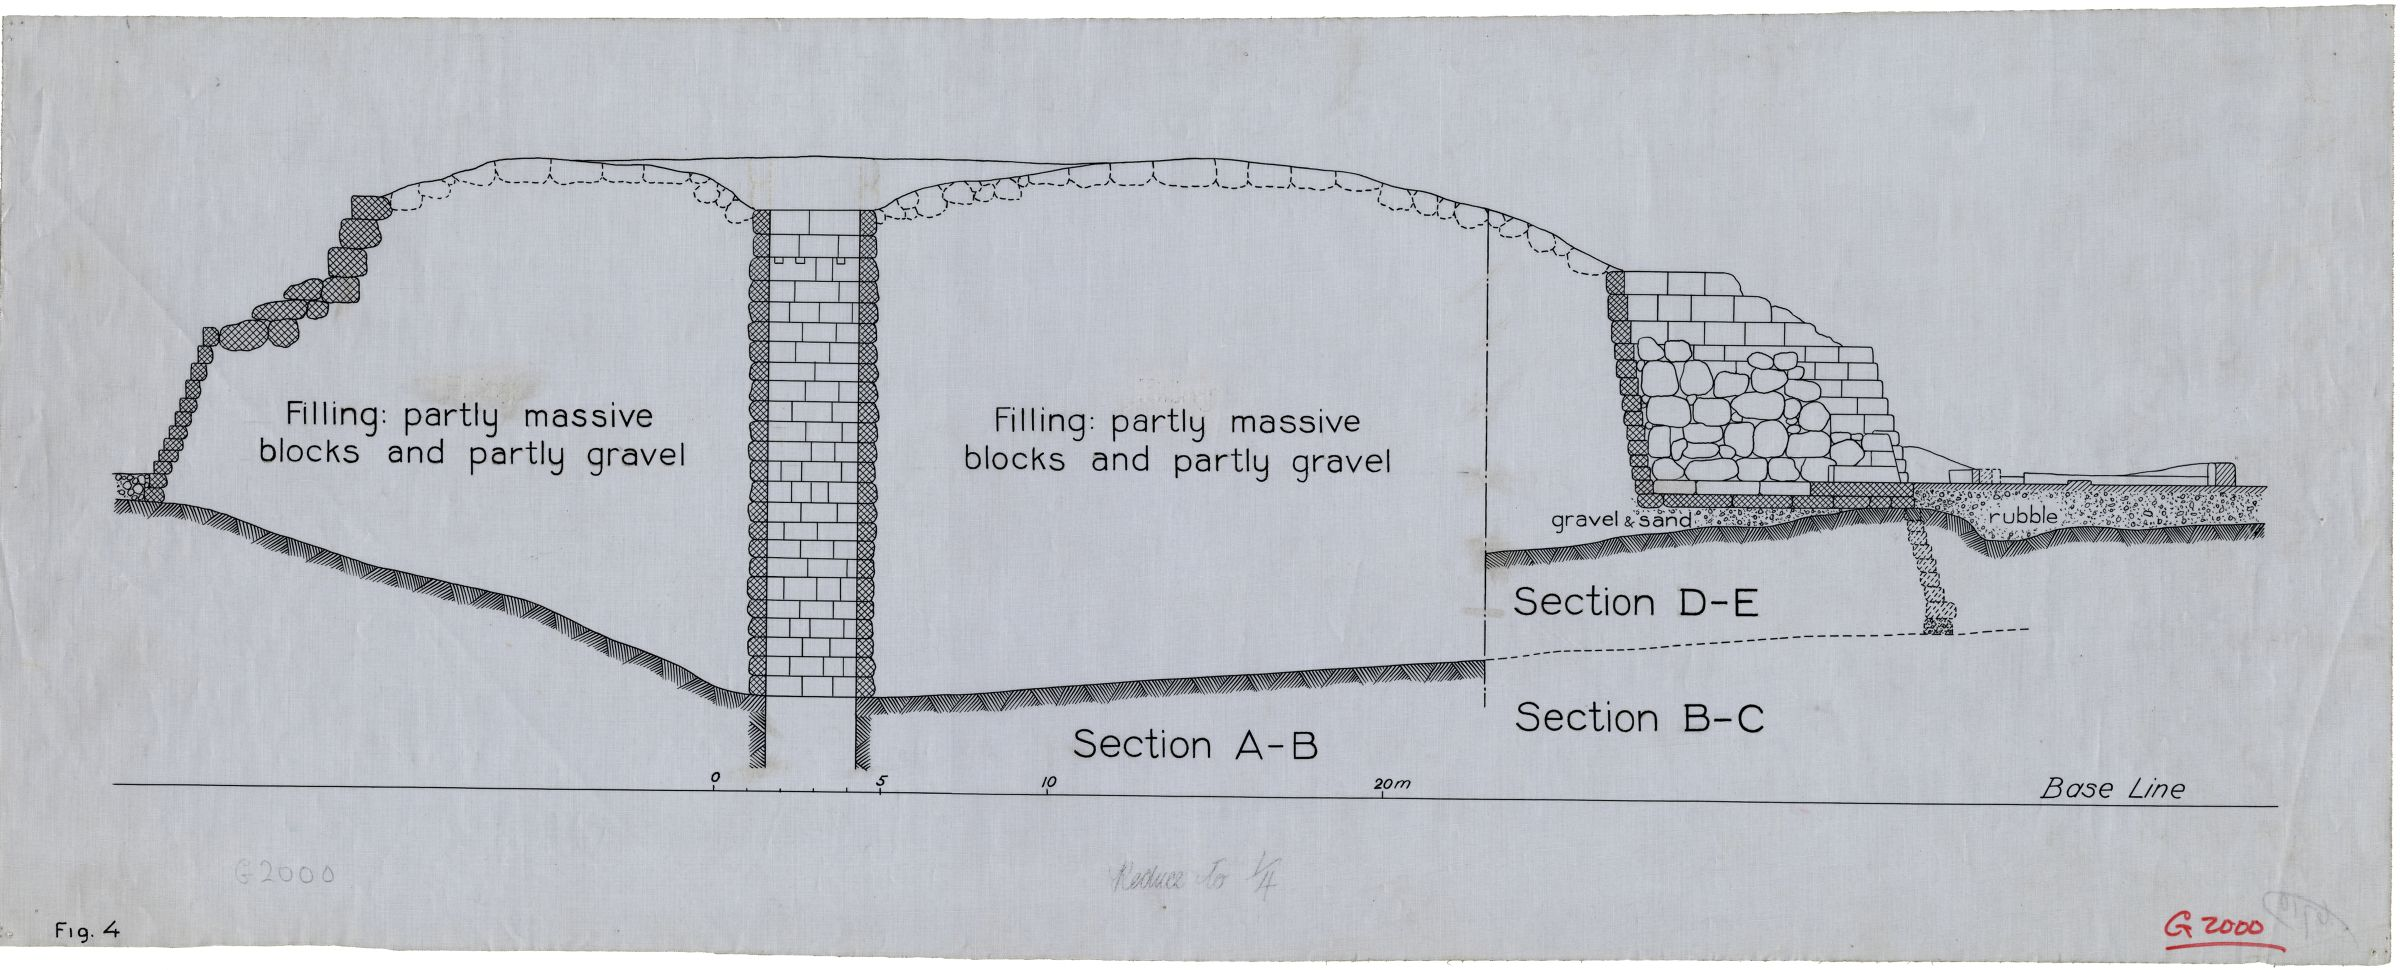 Maps and plans: Section of G 2000